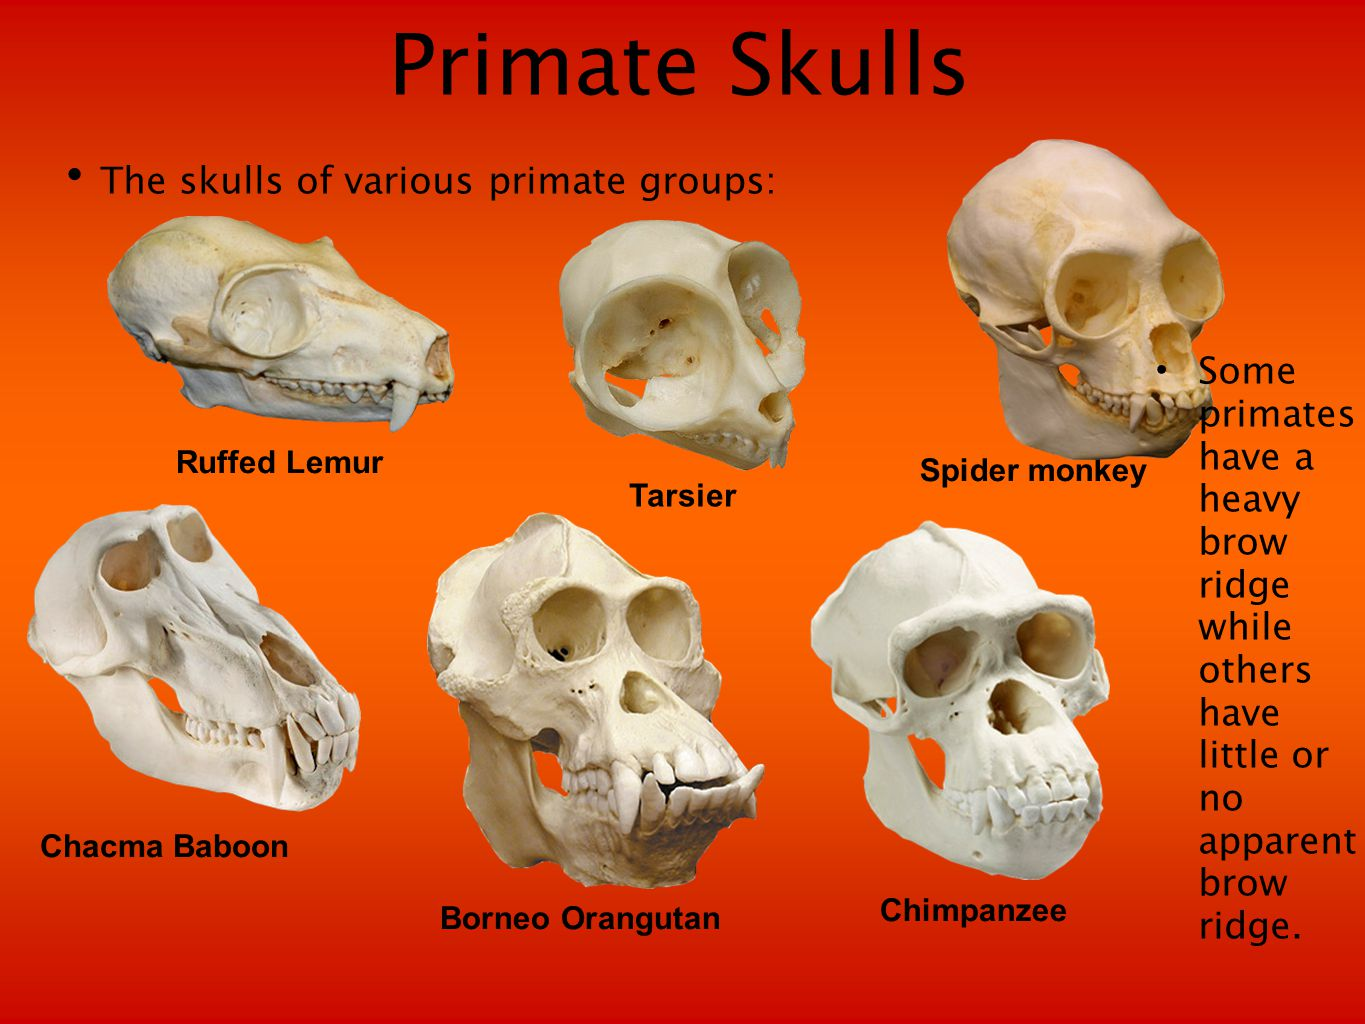 Genetic Similarity of Primates The genetic relationships among the primates have been investigated using DNA hybridization as well as comparing DNA sequences.